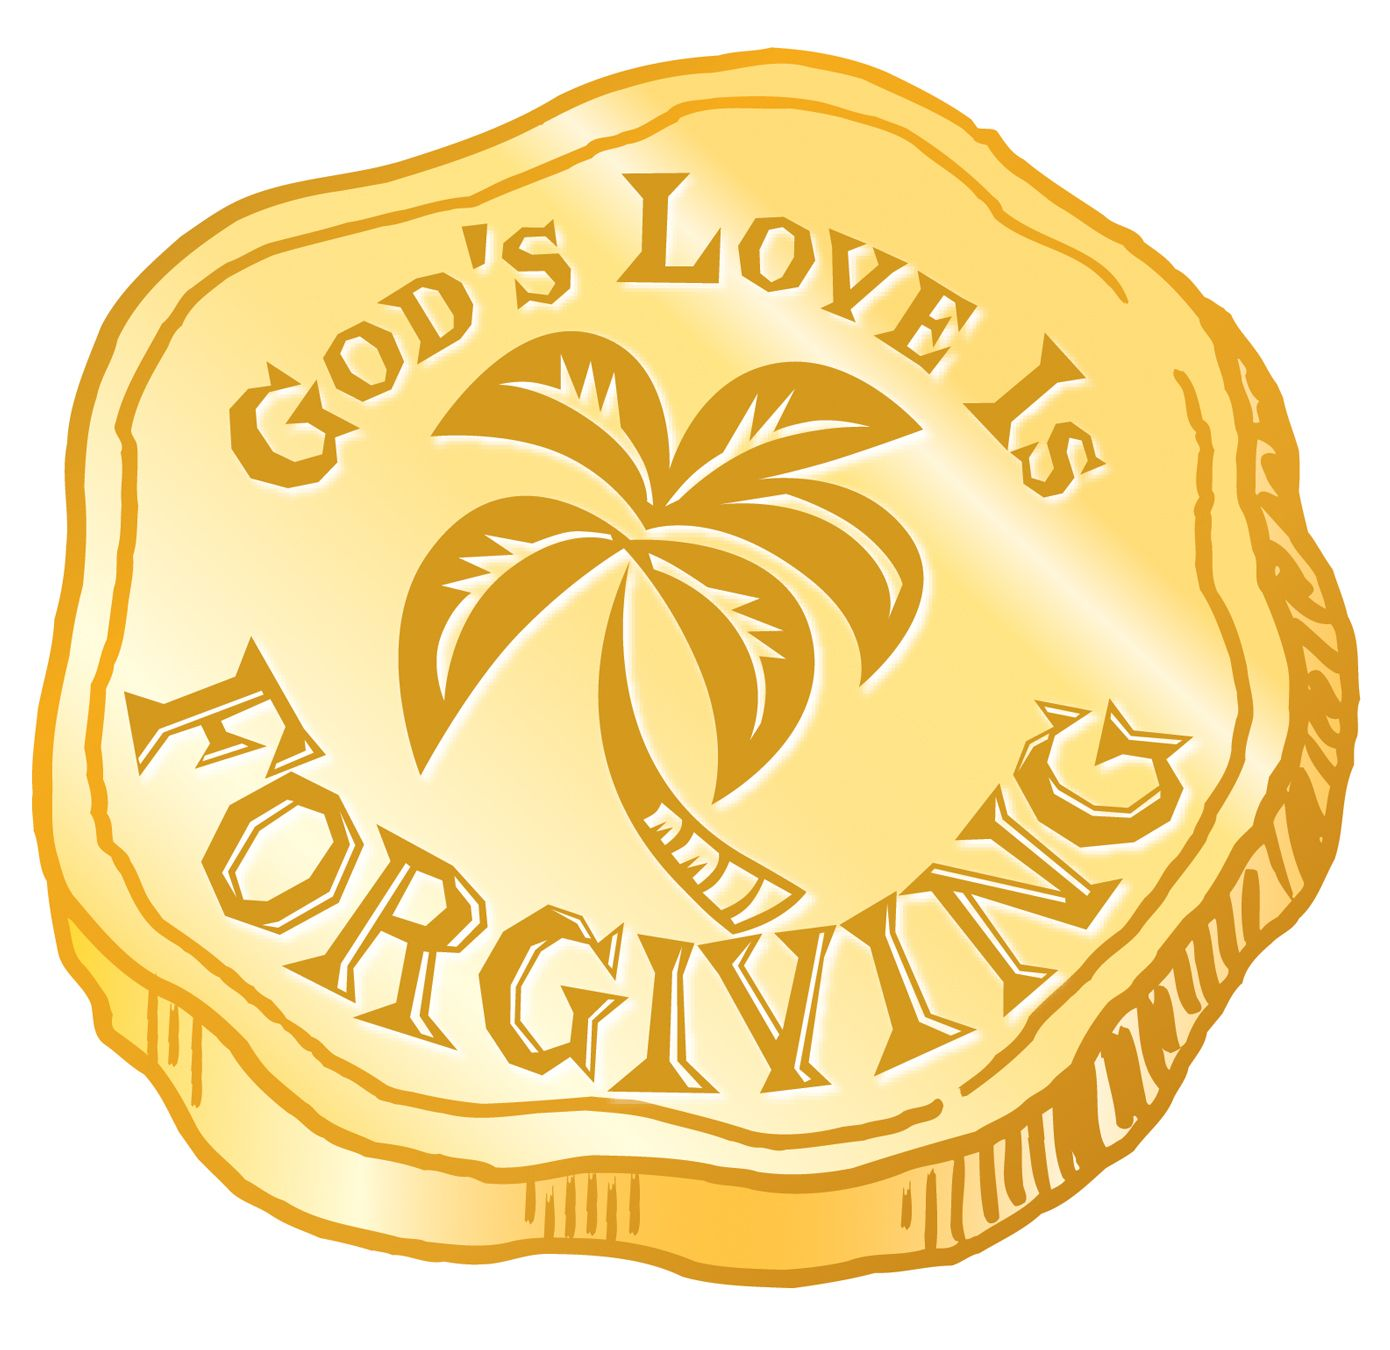 Sontreasure island clipart banner freeuse God\'s love is forgiving. | Inspiration - God and Love | Love ... banner freeuse